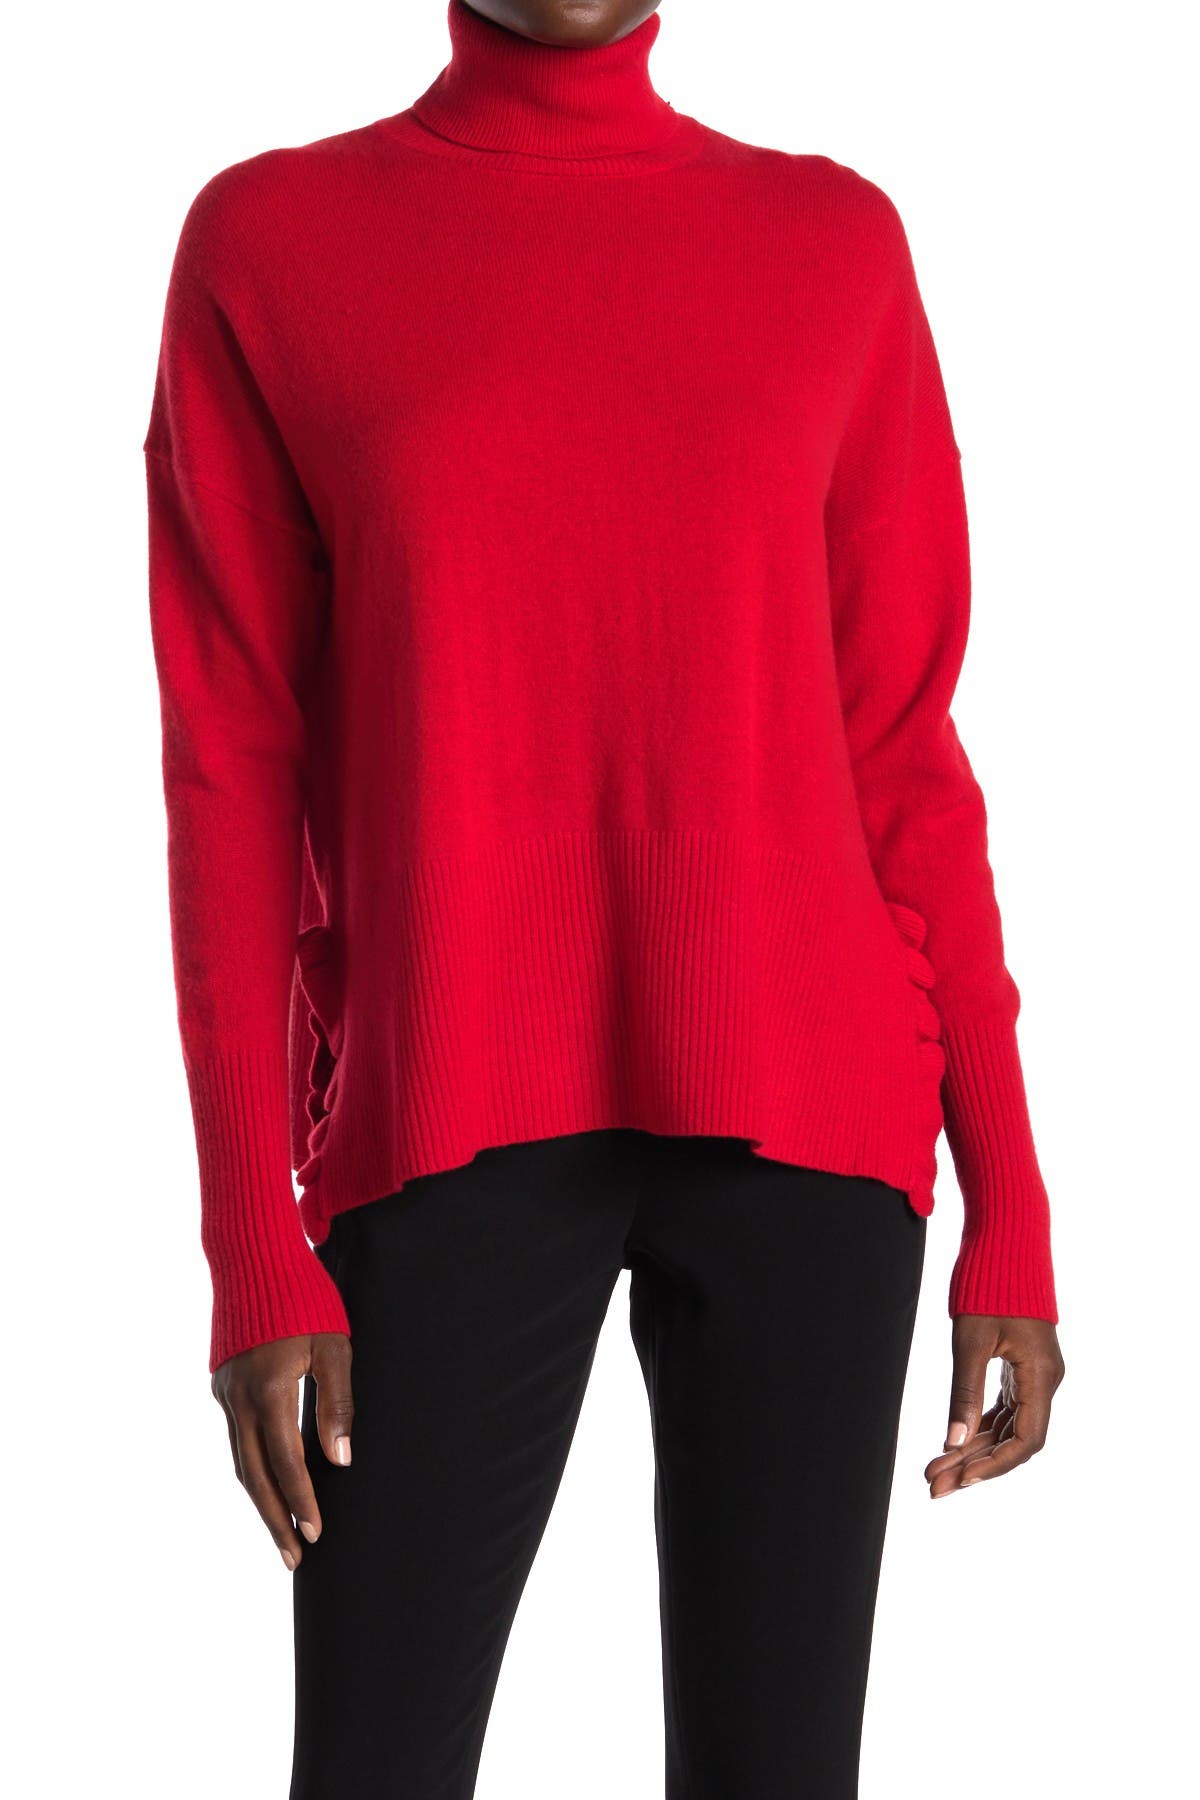 Image of Cinq a Sept Layla Cashmere Turtleneck Sweater